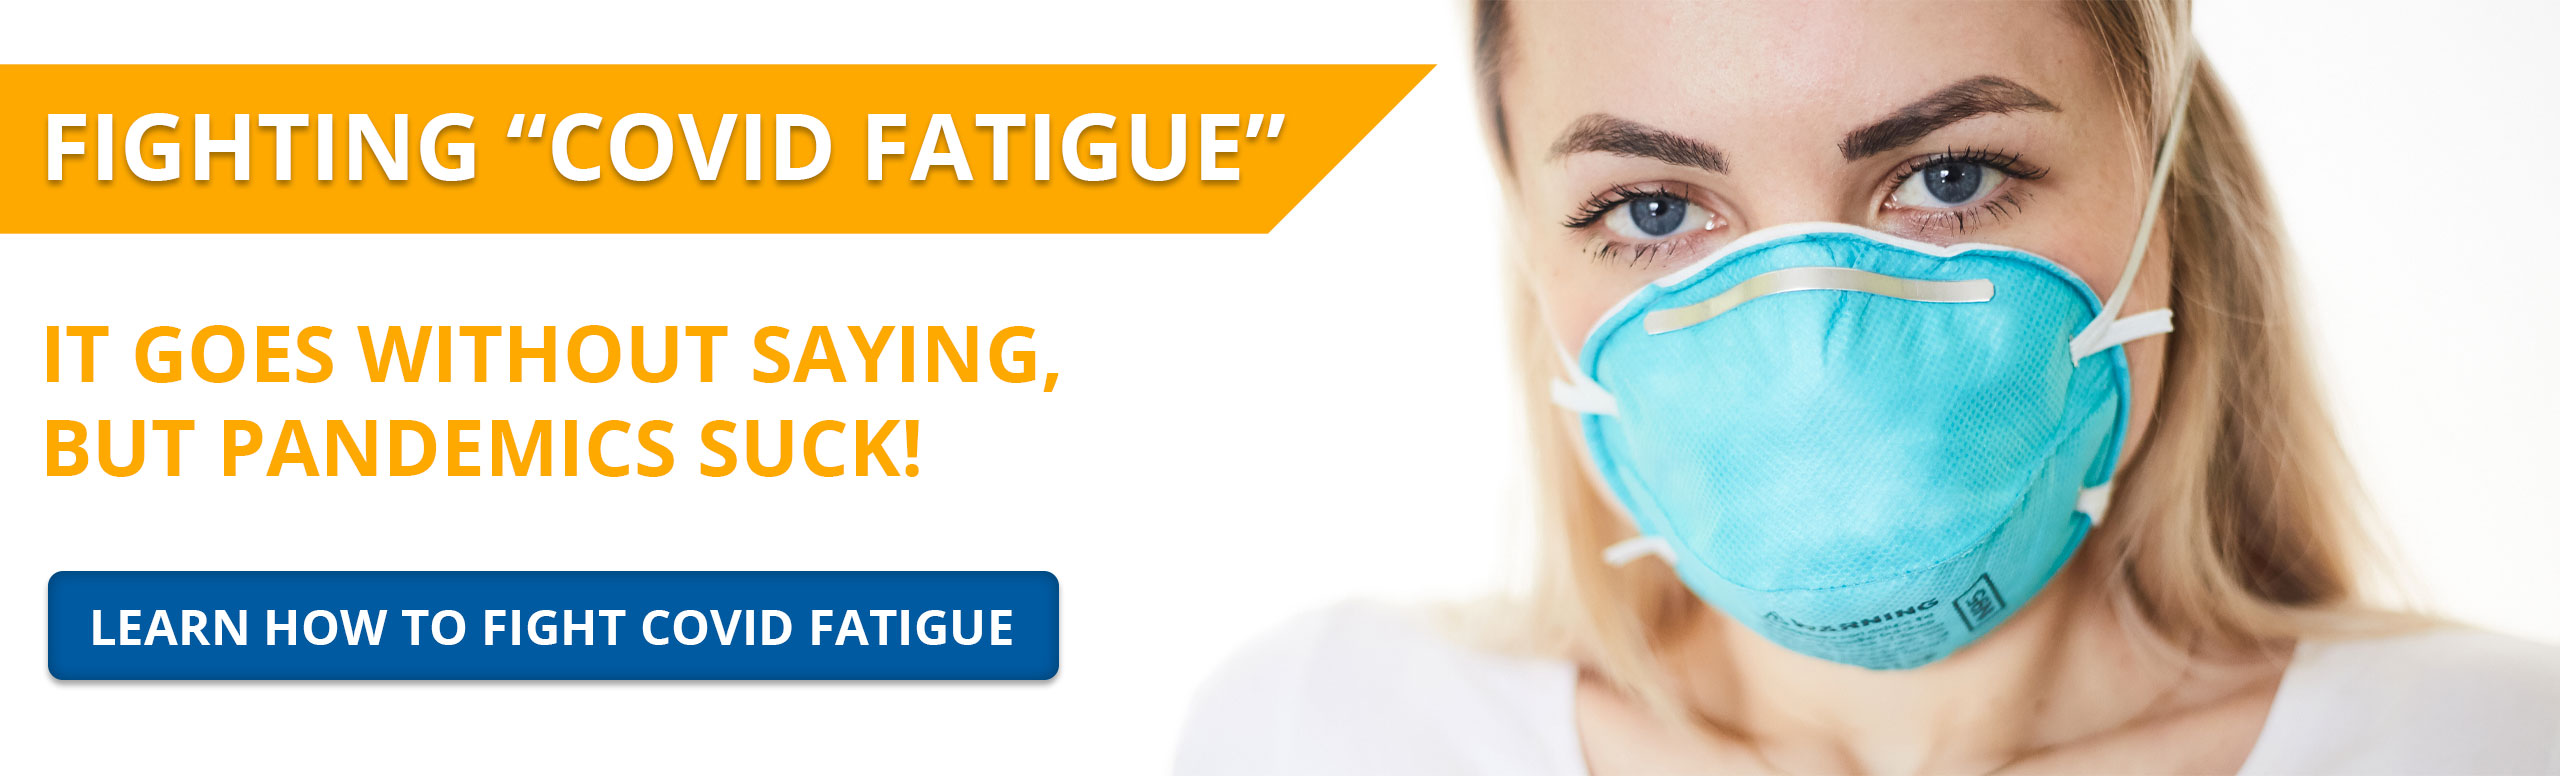 "Fighting ""COVID FATIGUE""  It goes without saying, but pandemics suck!  Learn how to fight Covid Fatigue"